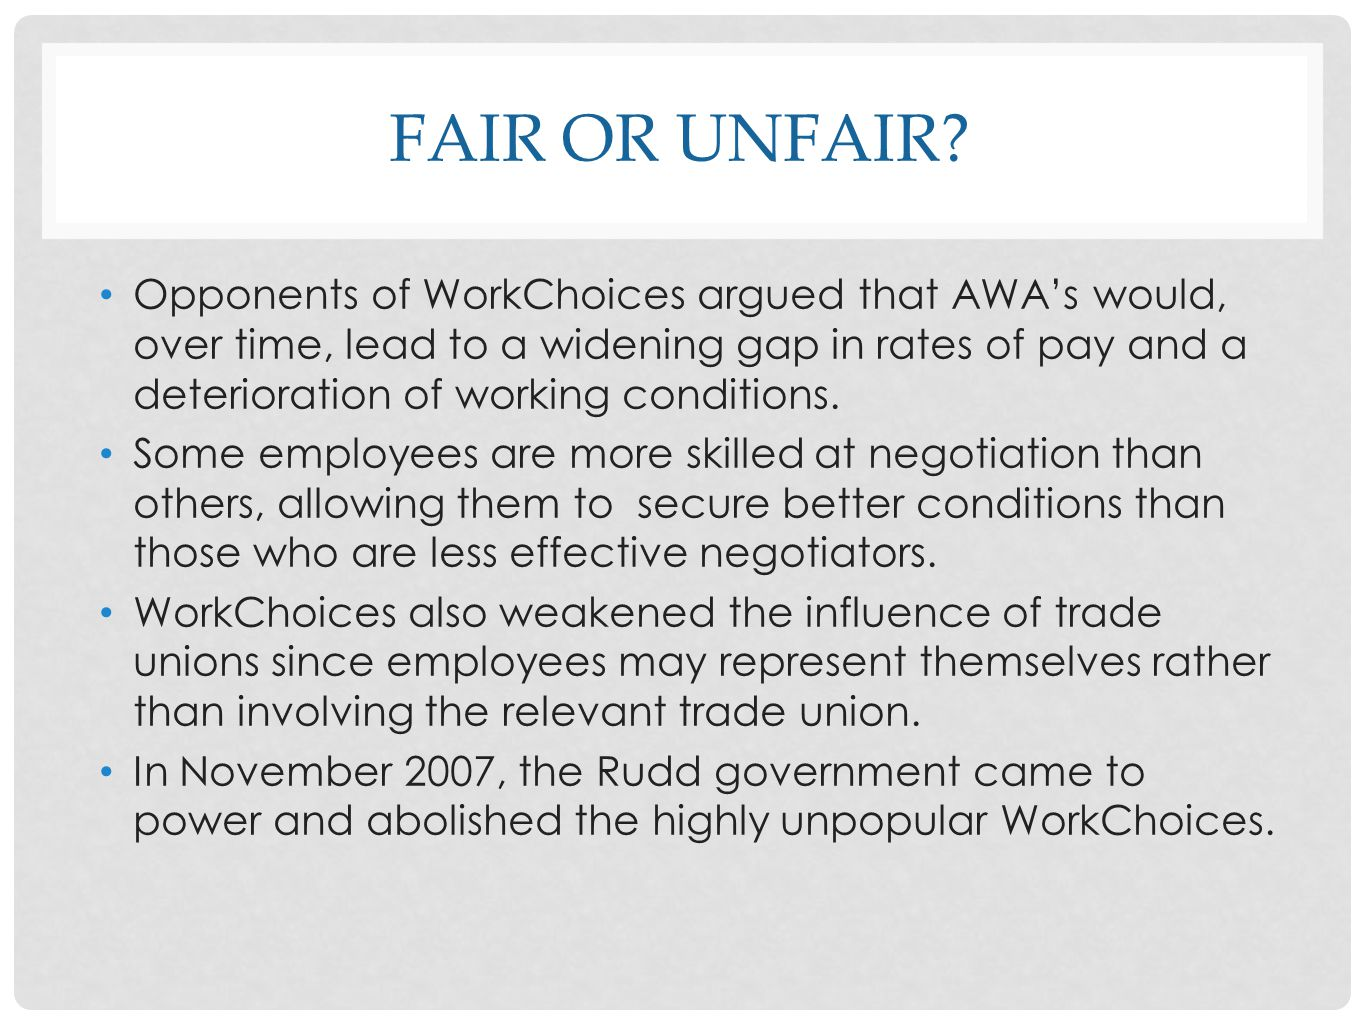 FAIR OR UNFAIR? Opponents of WorkChoices argued that AWAs would, over time, lead to a widening gap in rates of pay and a deterioration of working cond